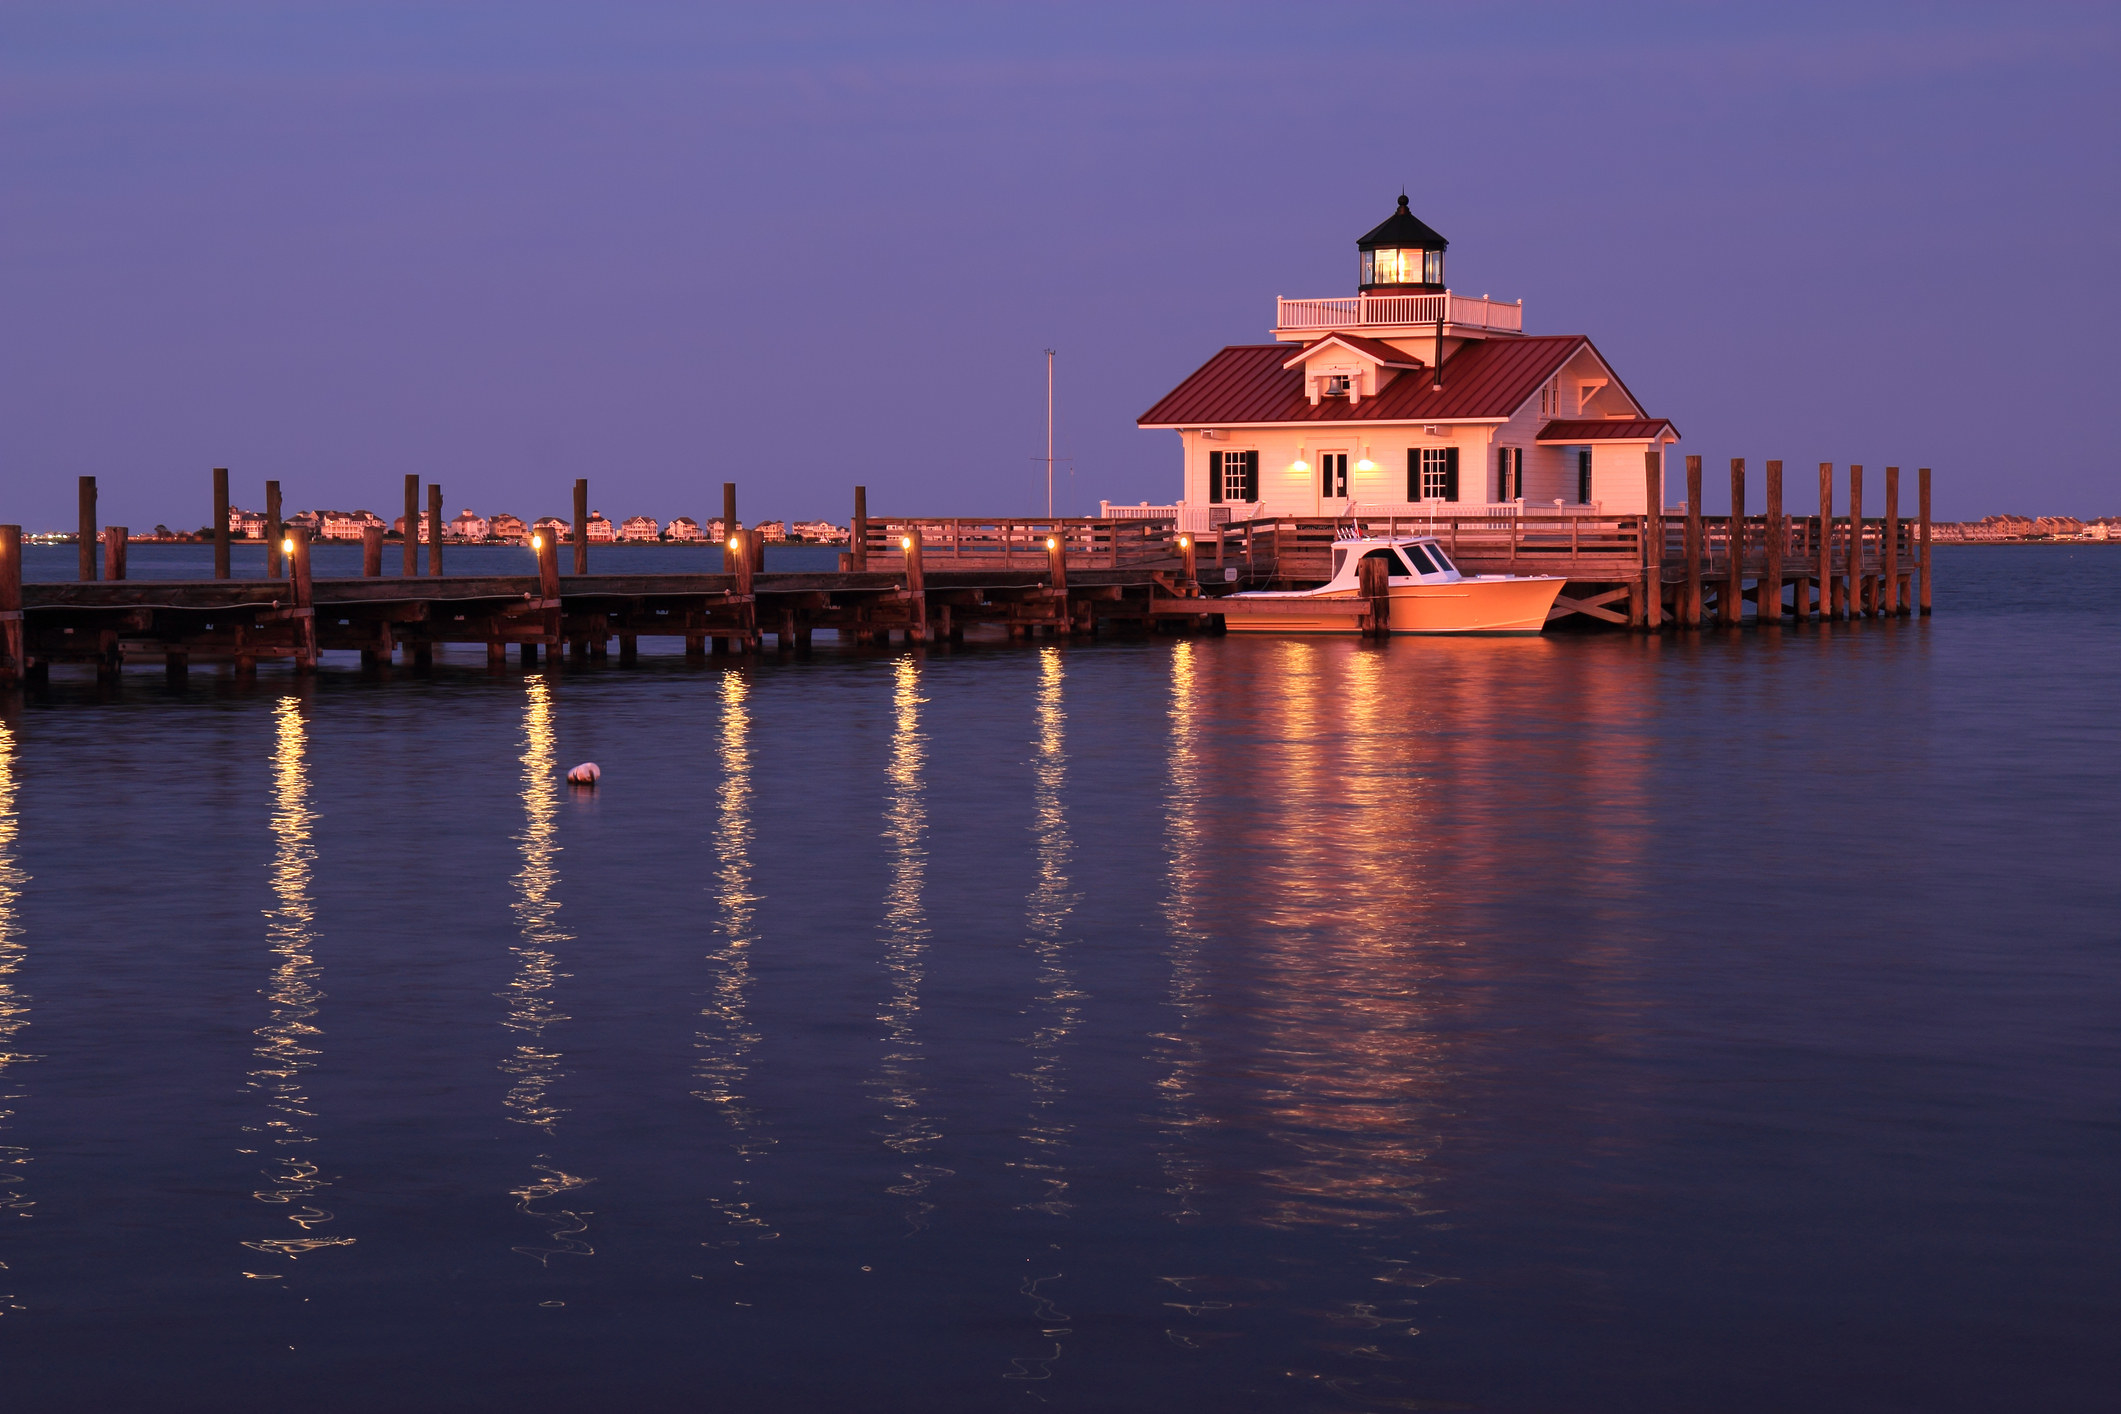 A lit up pier with a building at the end and soft dusk light